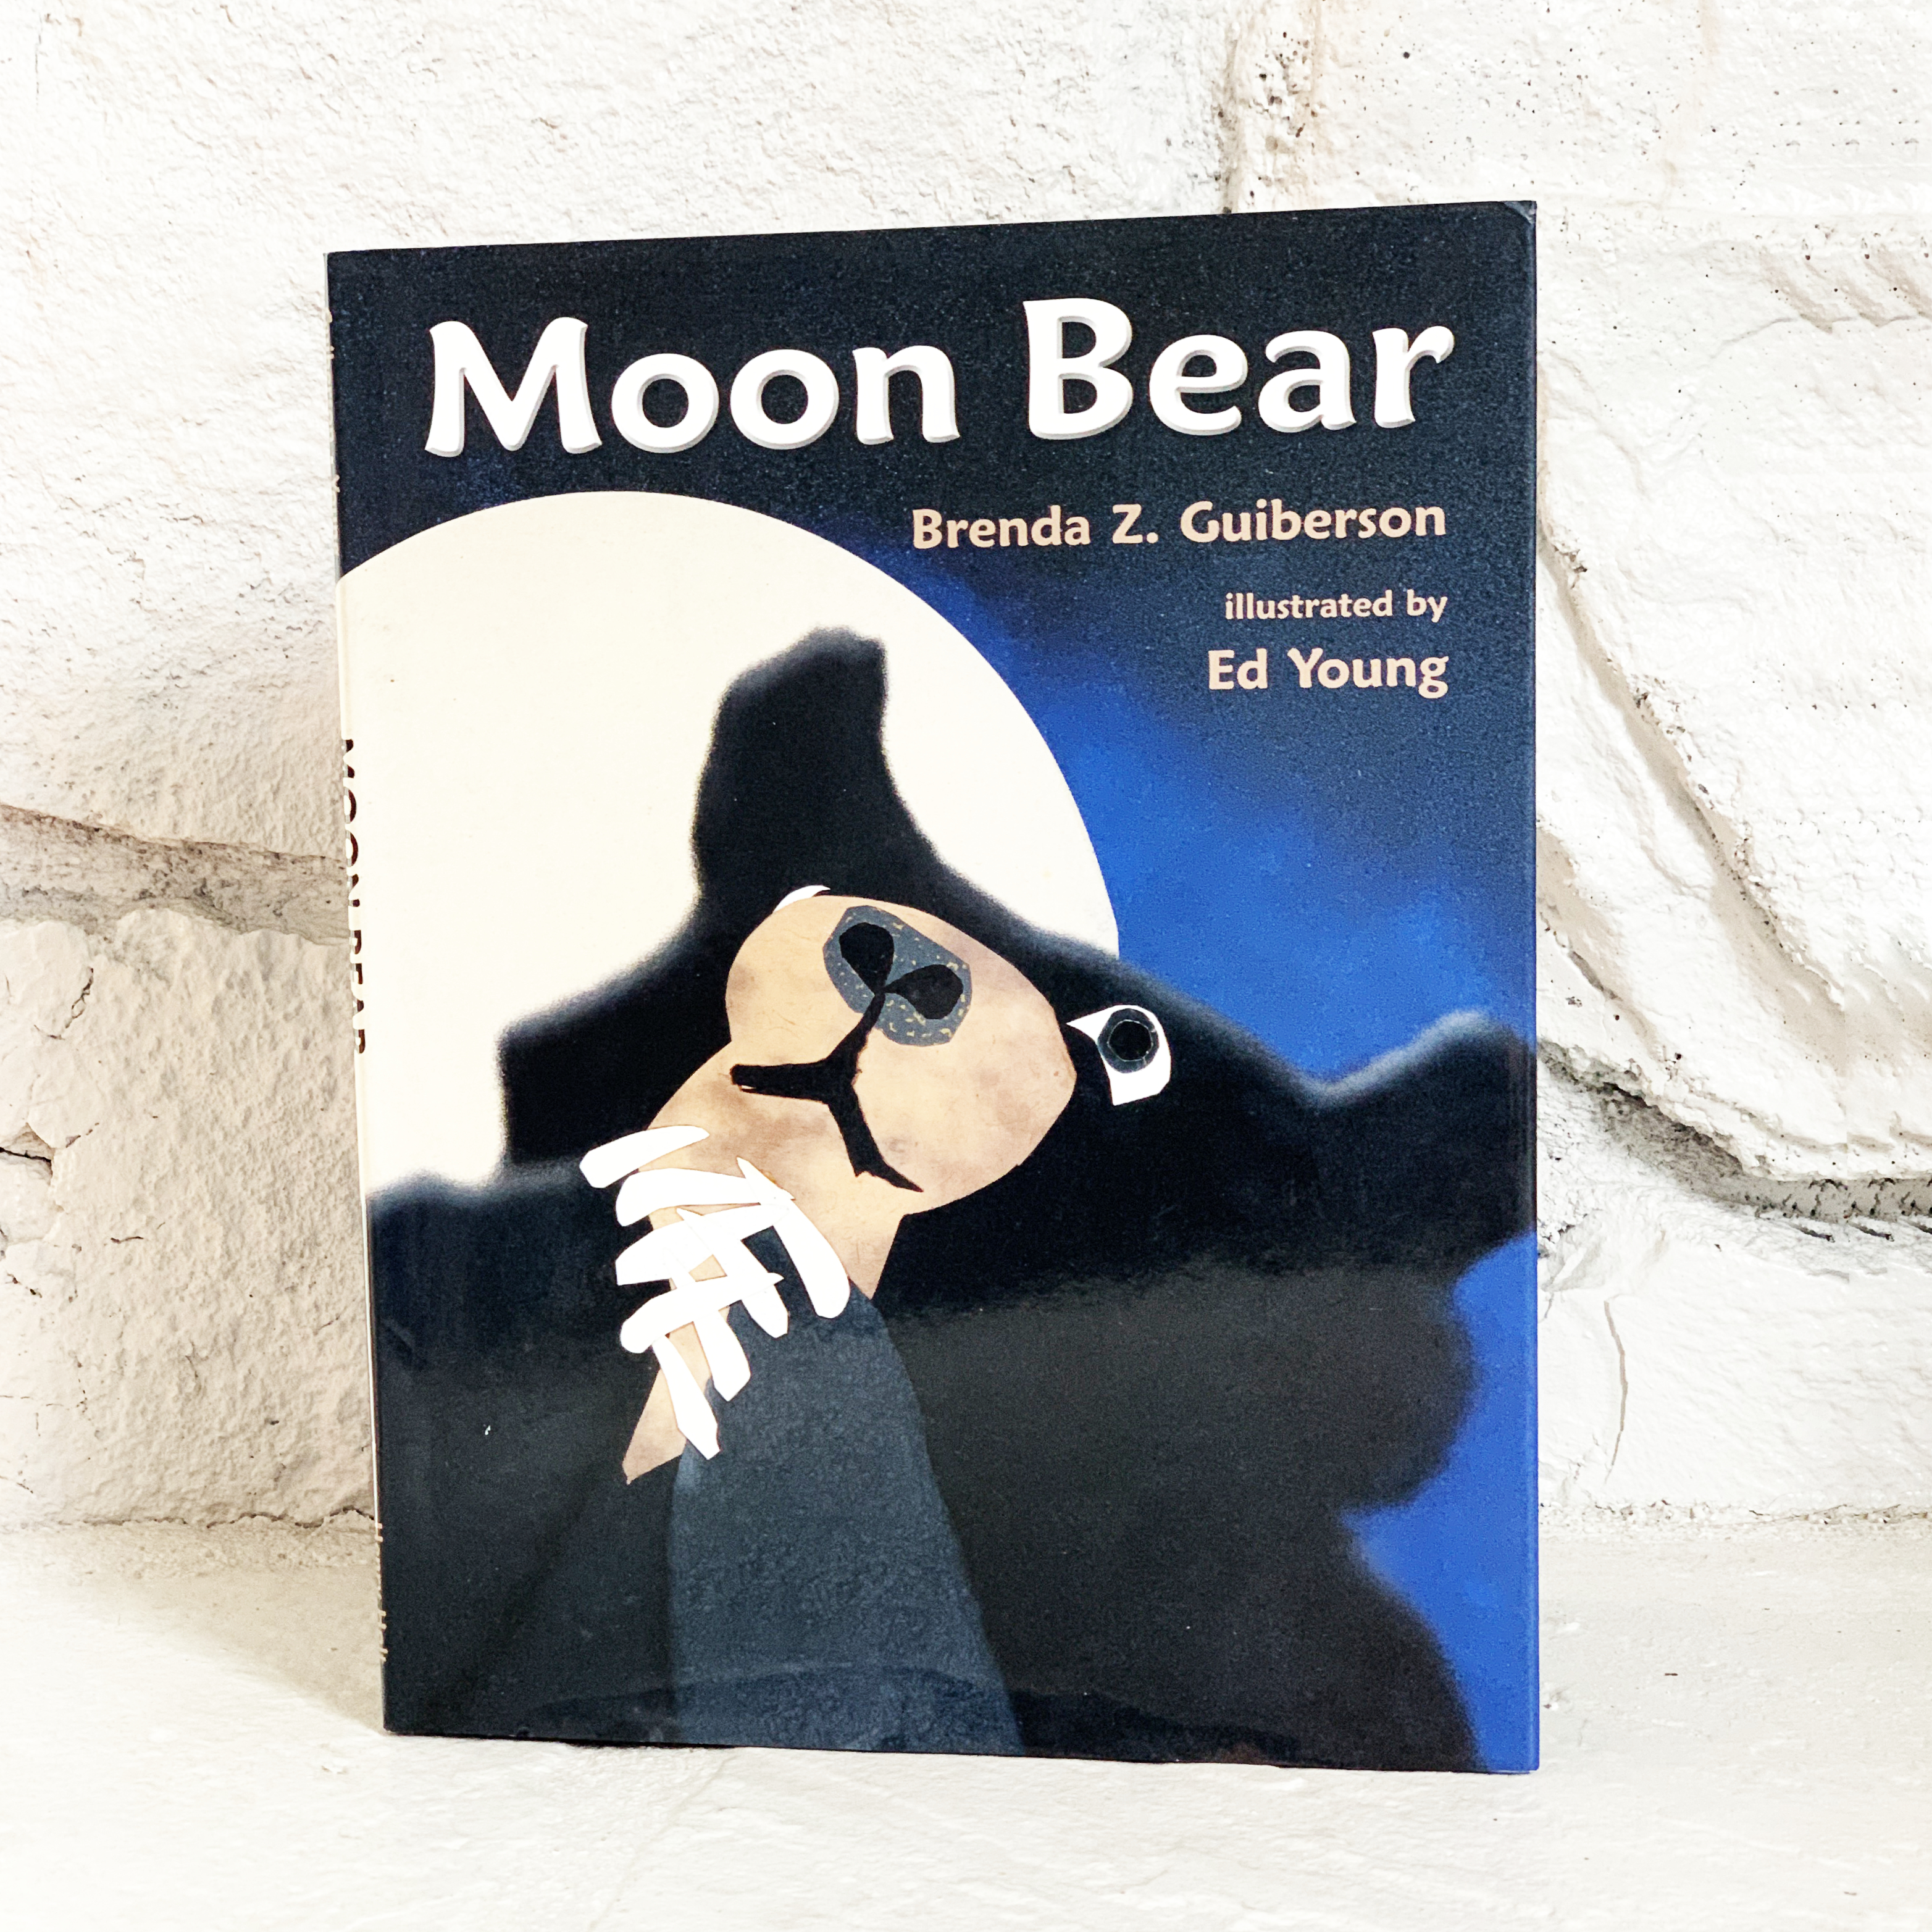 Gorgeous moon bear book by Brenda Guiberson and Ed Young | For Animals For Earth